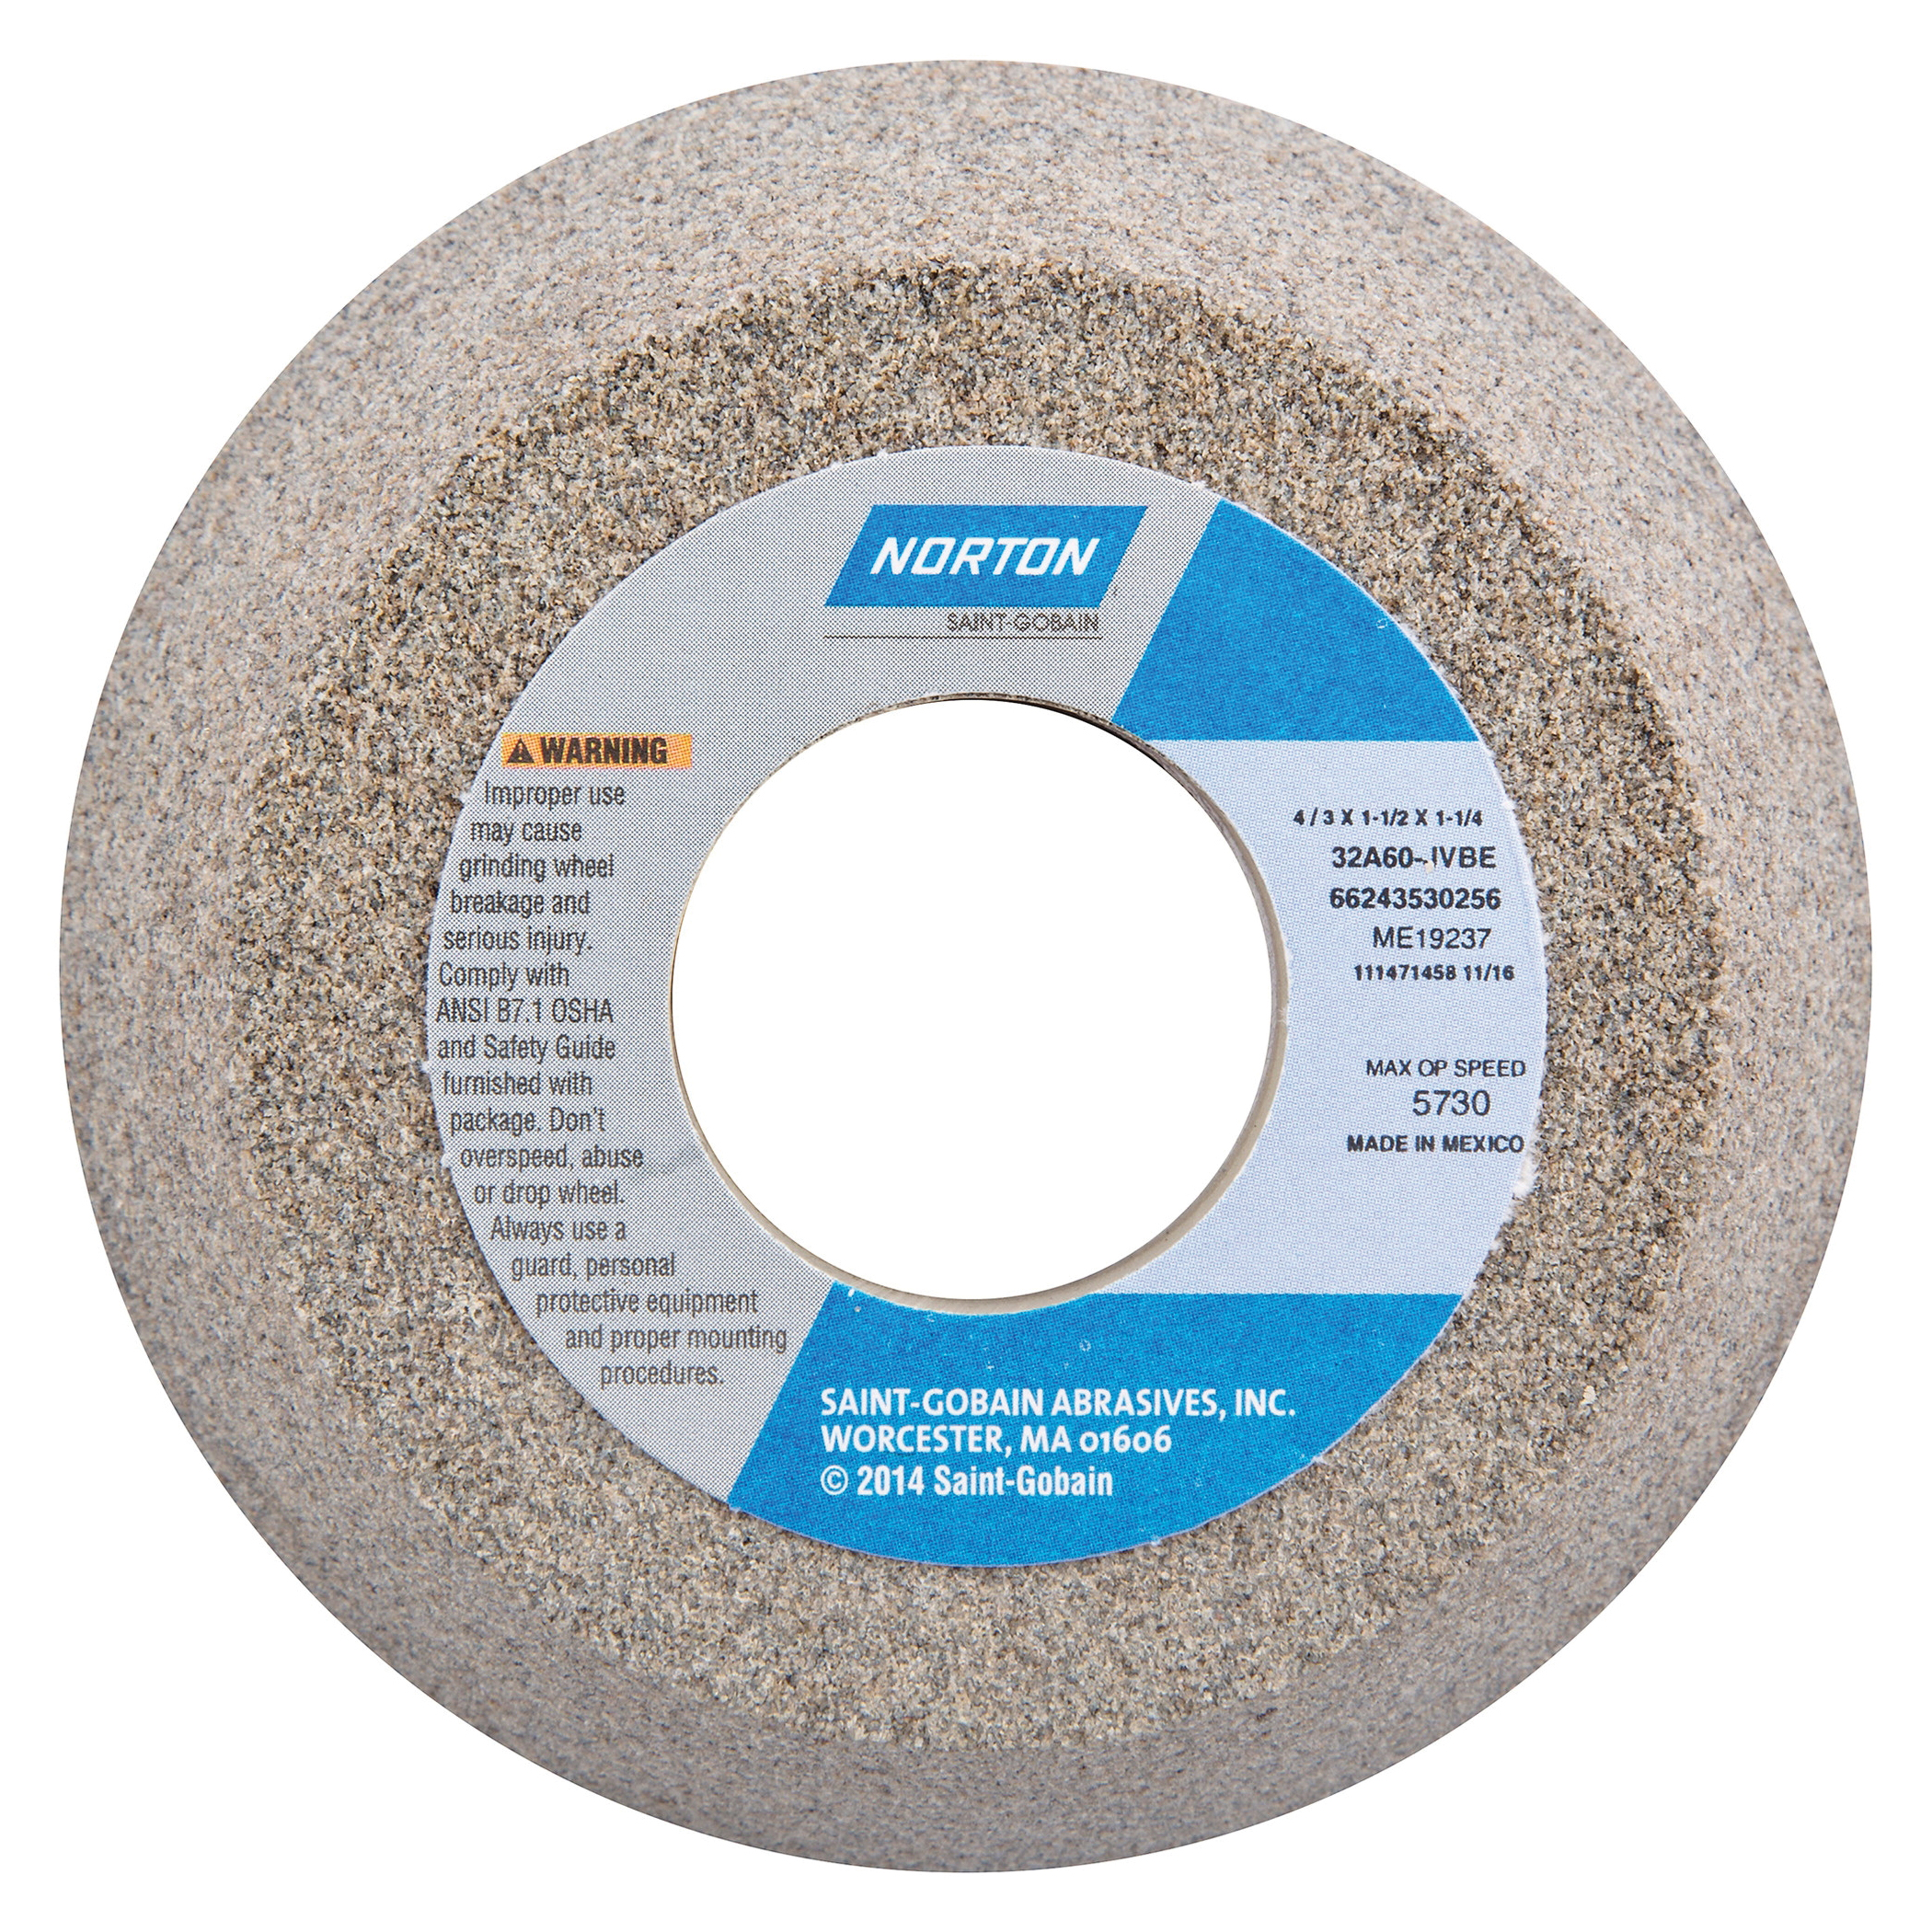 Norton® 66243530256 32A Toolroom Wheel, 4 in Dia x 1-1/2 in THK, 1-1/4 in Center Hole, 60 Grit, Aluminum Oxide Abrasive